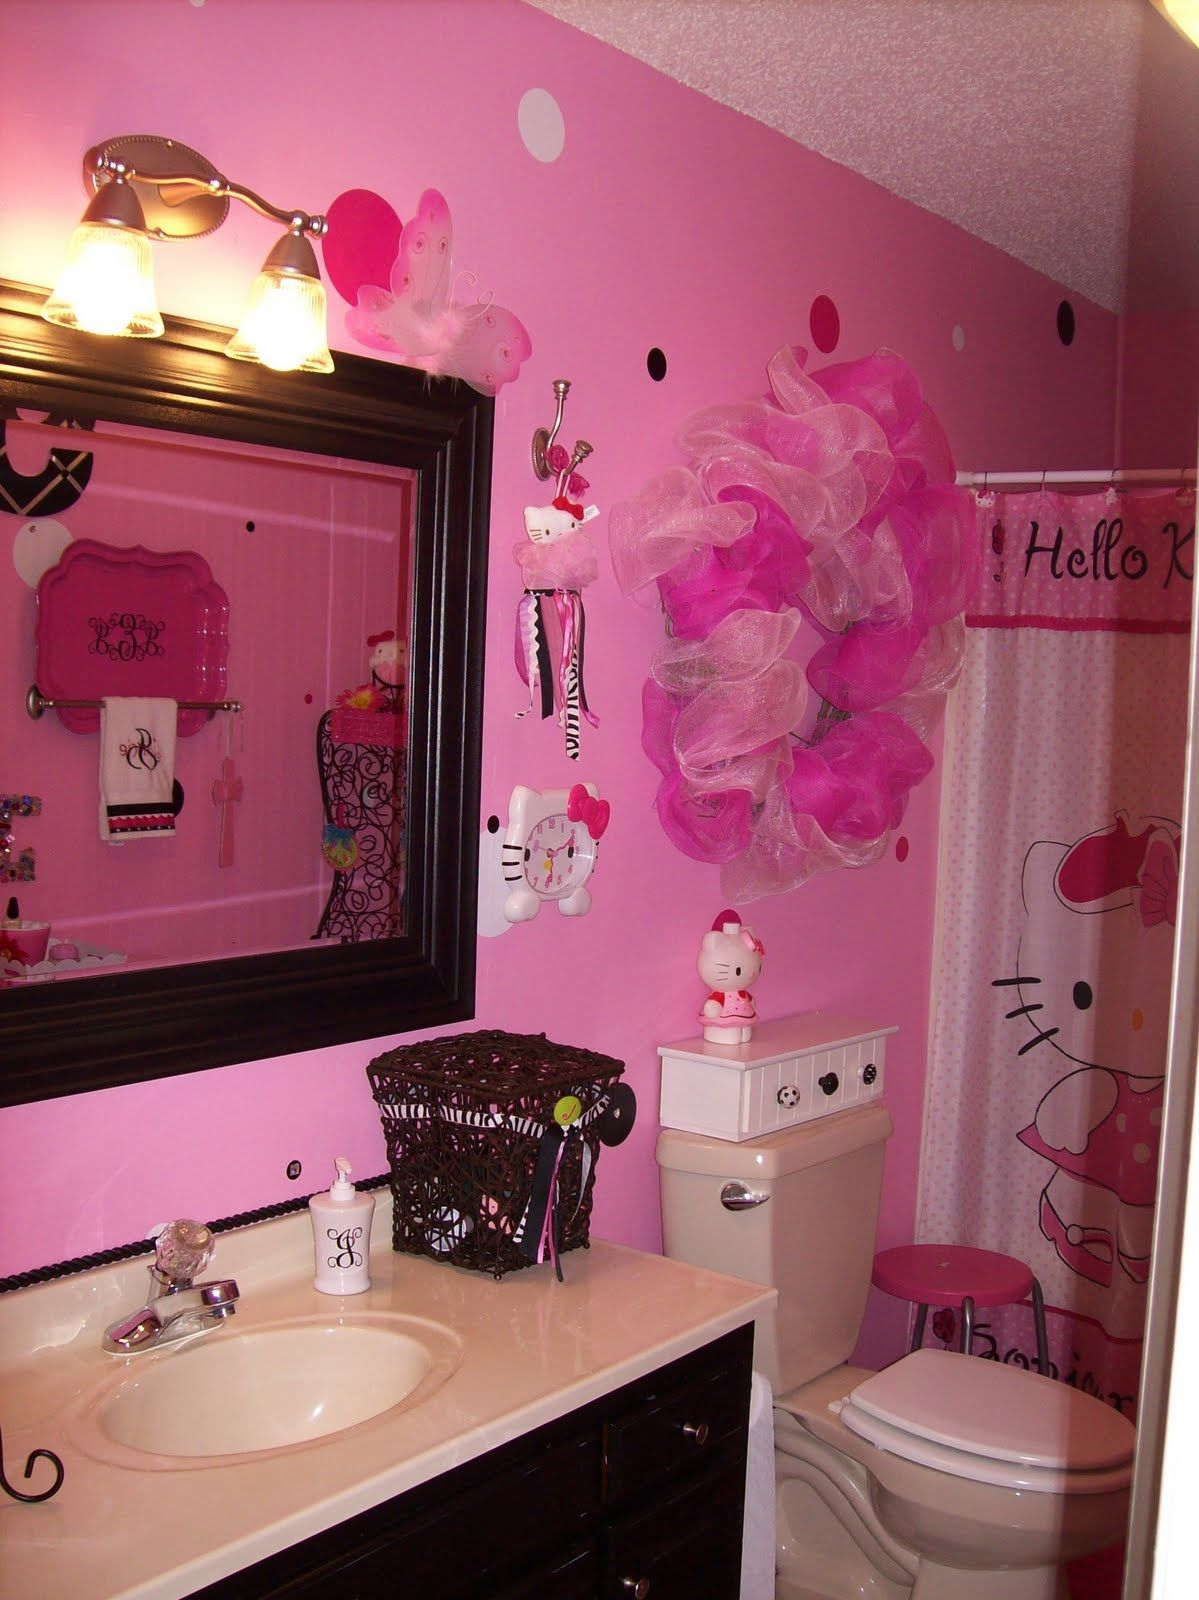 30 Bathroom Sets Design Ideas with Images Hello kitty Kitty and